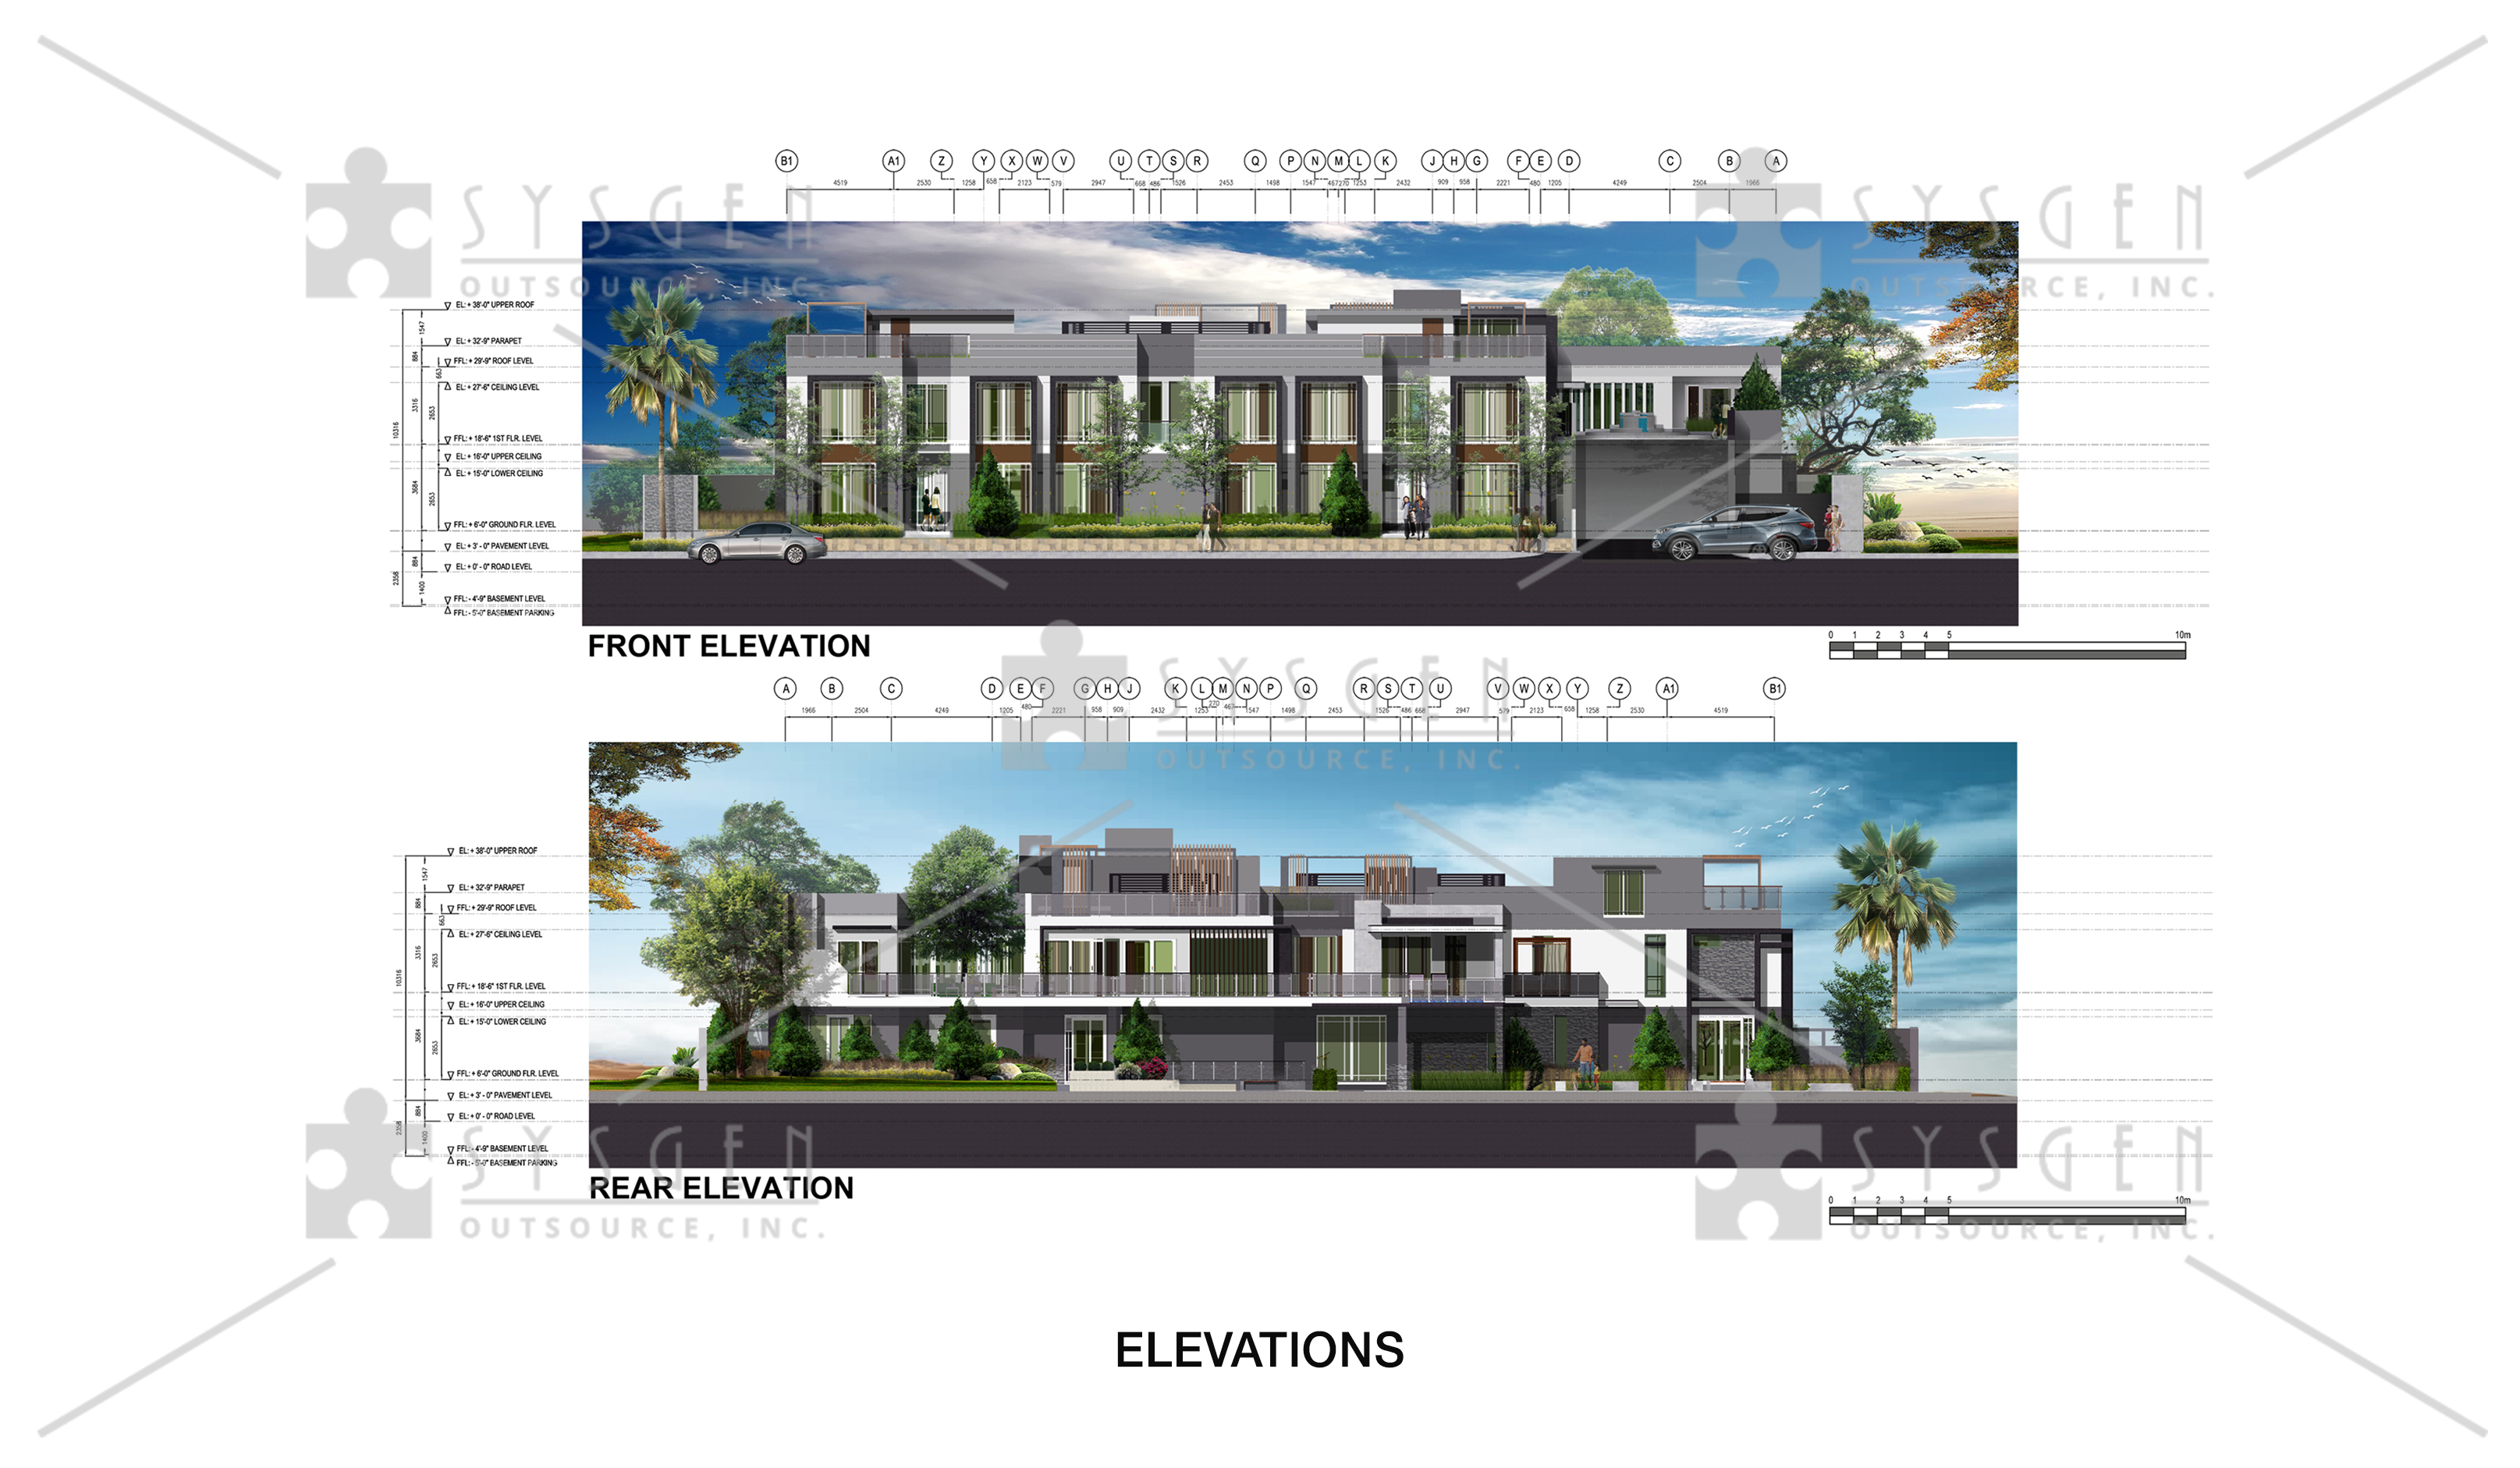 sysgen-outsource-cad-outsourcing-services-sketch-up-residential_villa-jj9